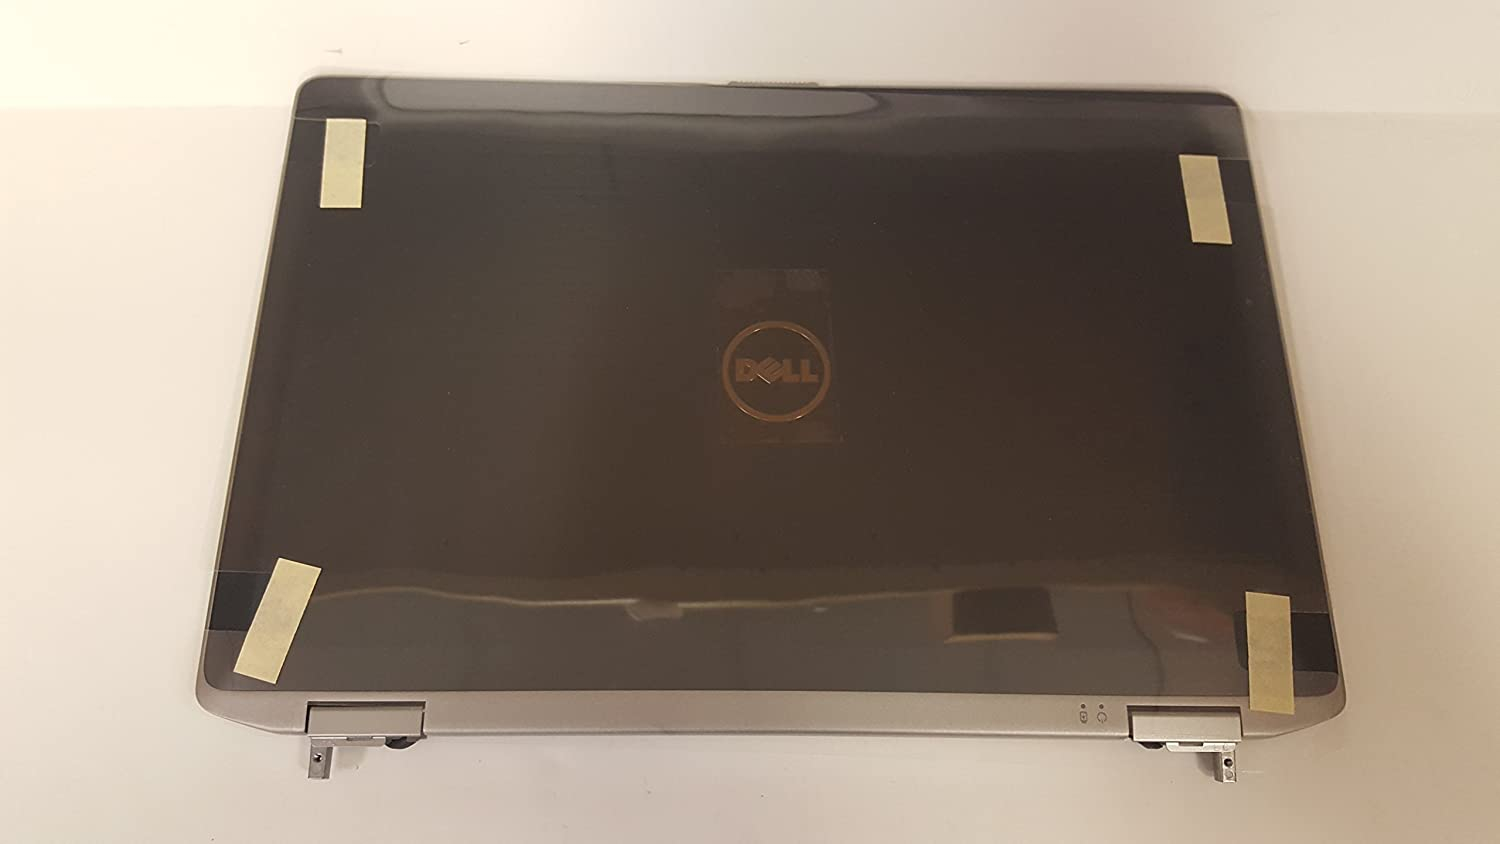 NEW! Lot of 5 Dell Latitude E6520 top covers 8V9R7 with LCD cable C4K5X